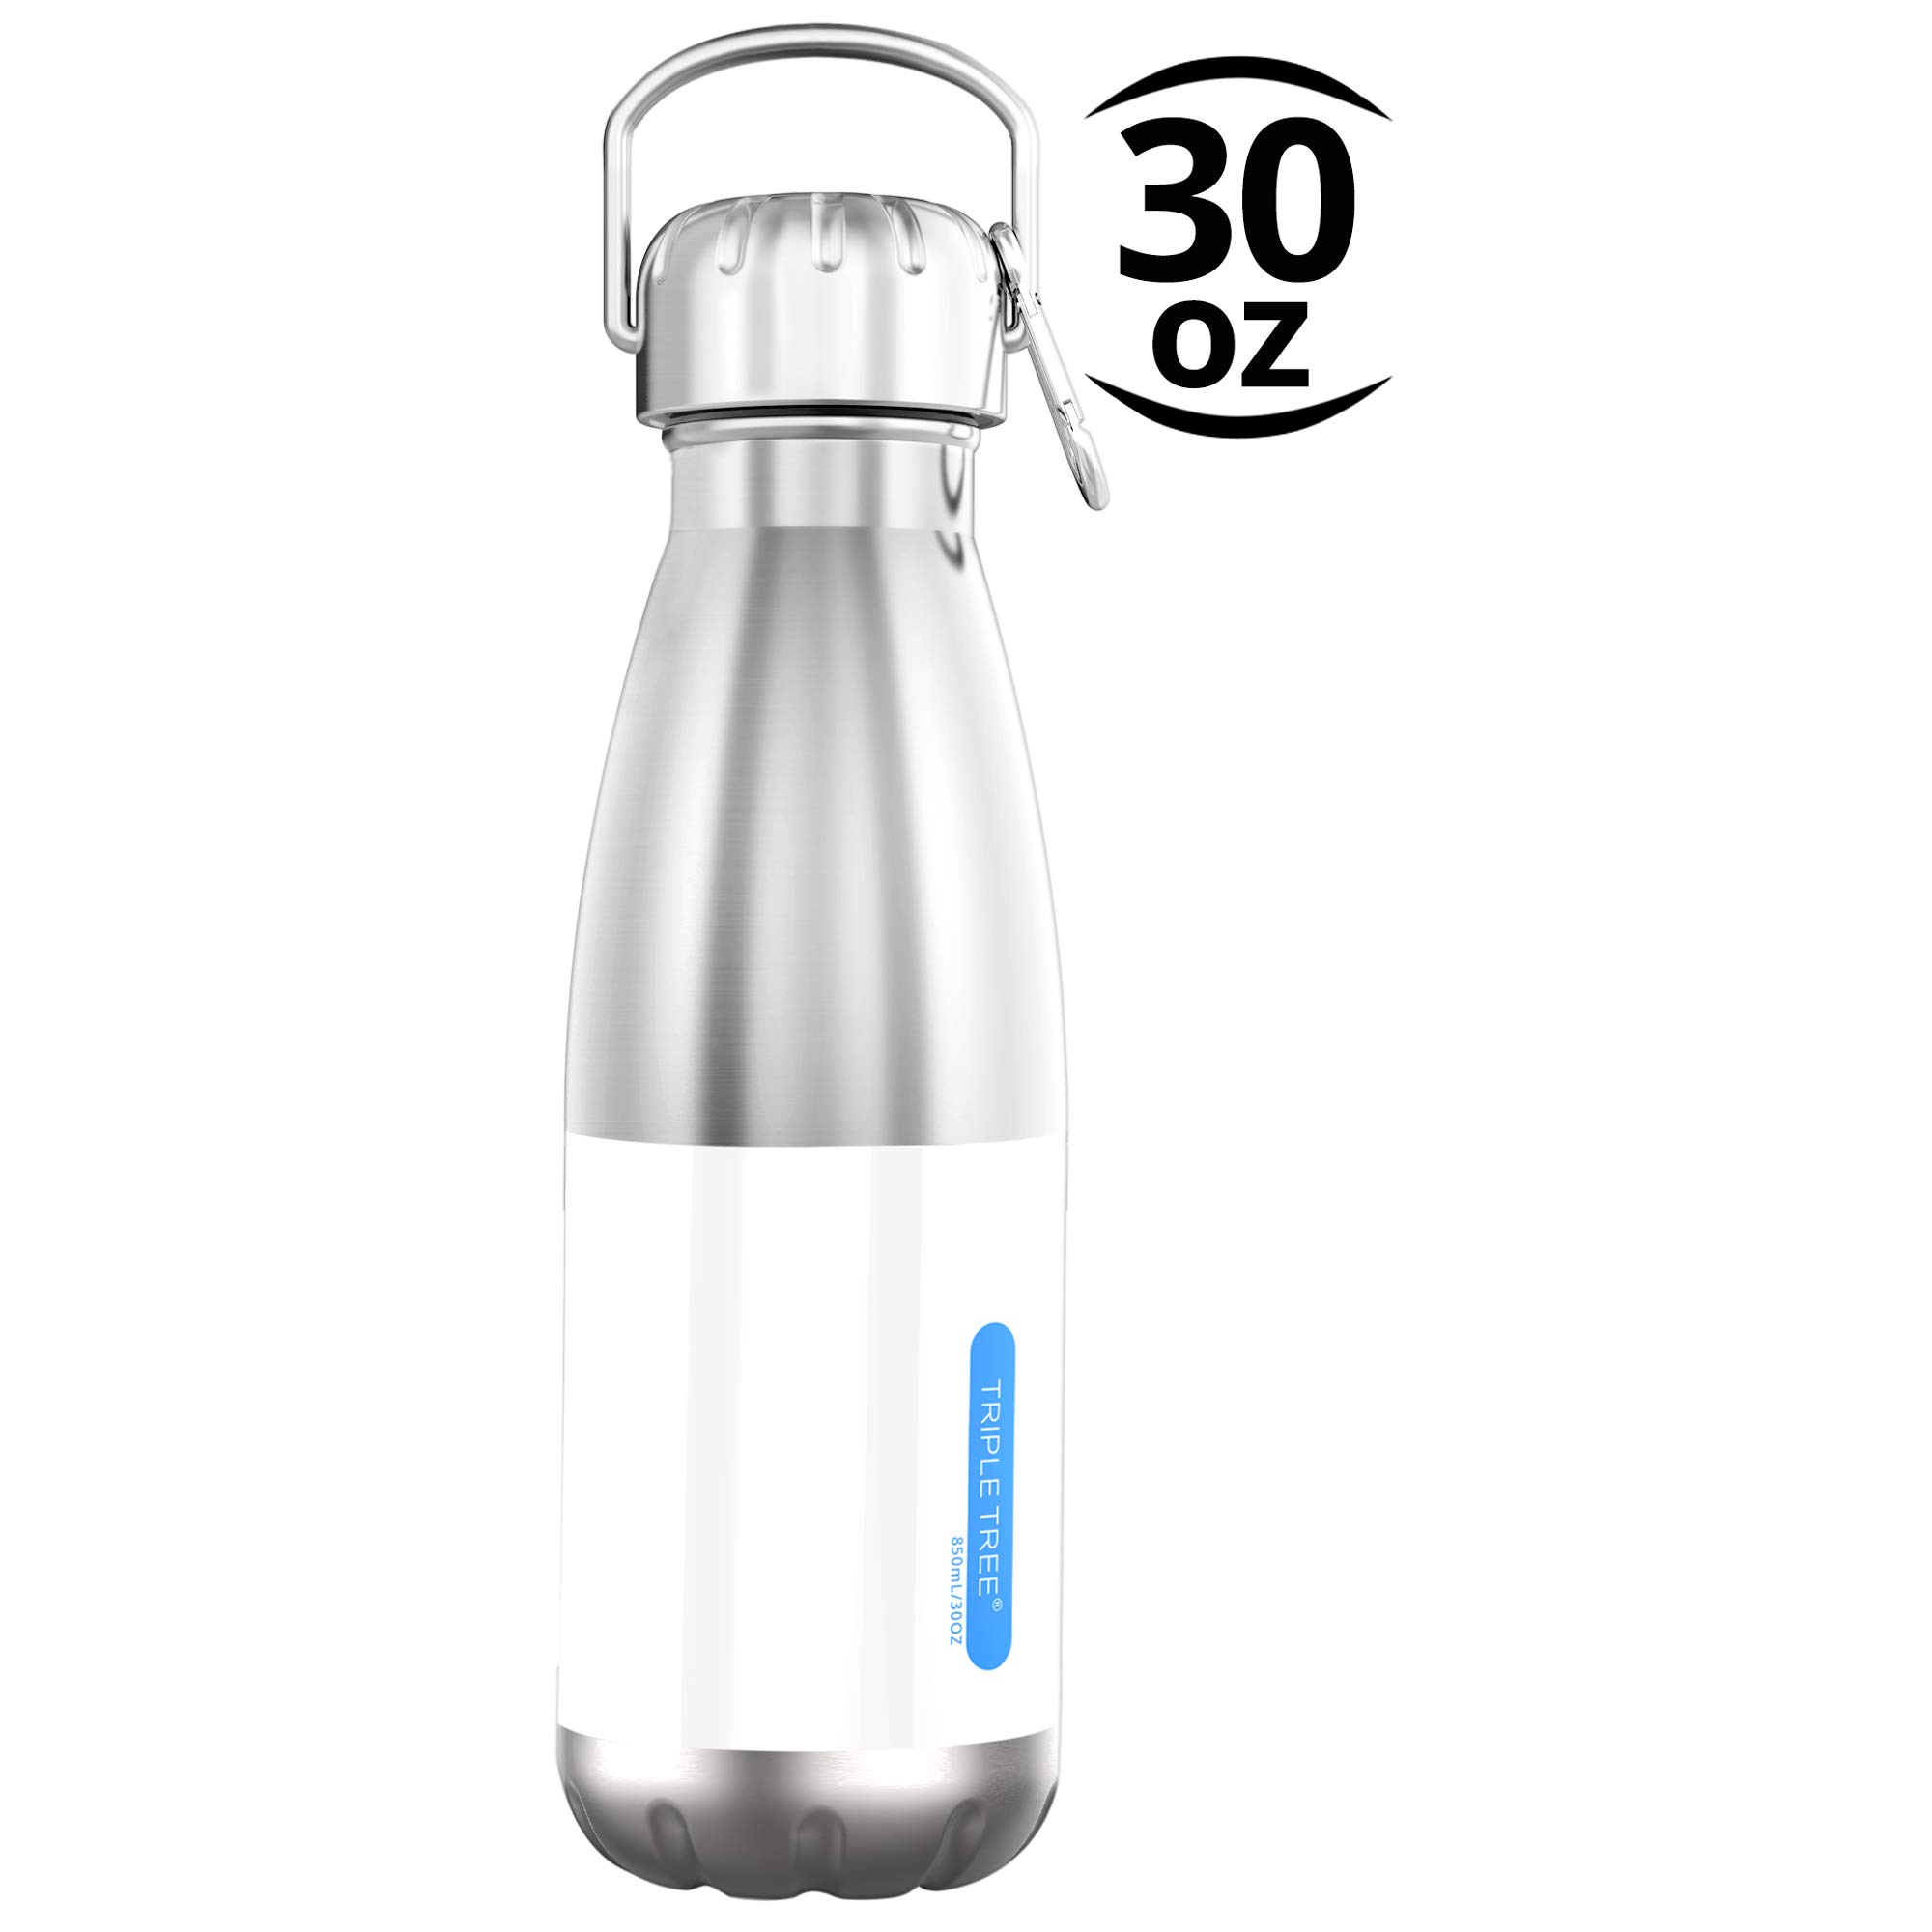 TRIPLE TREE Vacuum Insulated Stainless Steel Water Bottle-Scratch Resistance & Eco-Friendly for Outdoor Sports, 850 ML/ 30 OZ Double Walled Construction Bottle